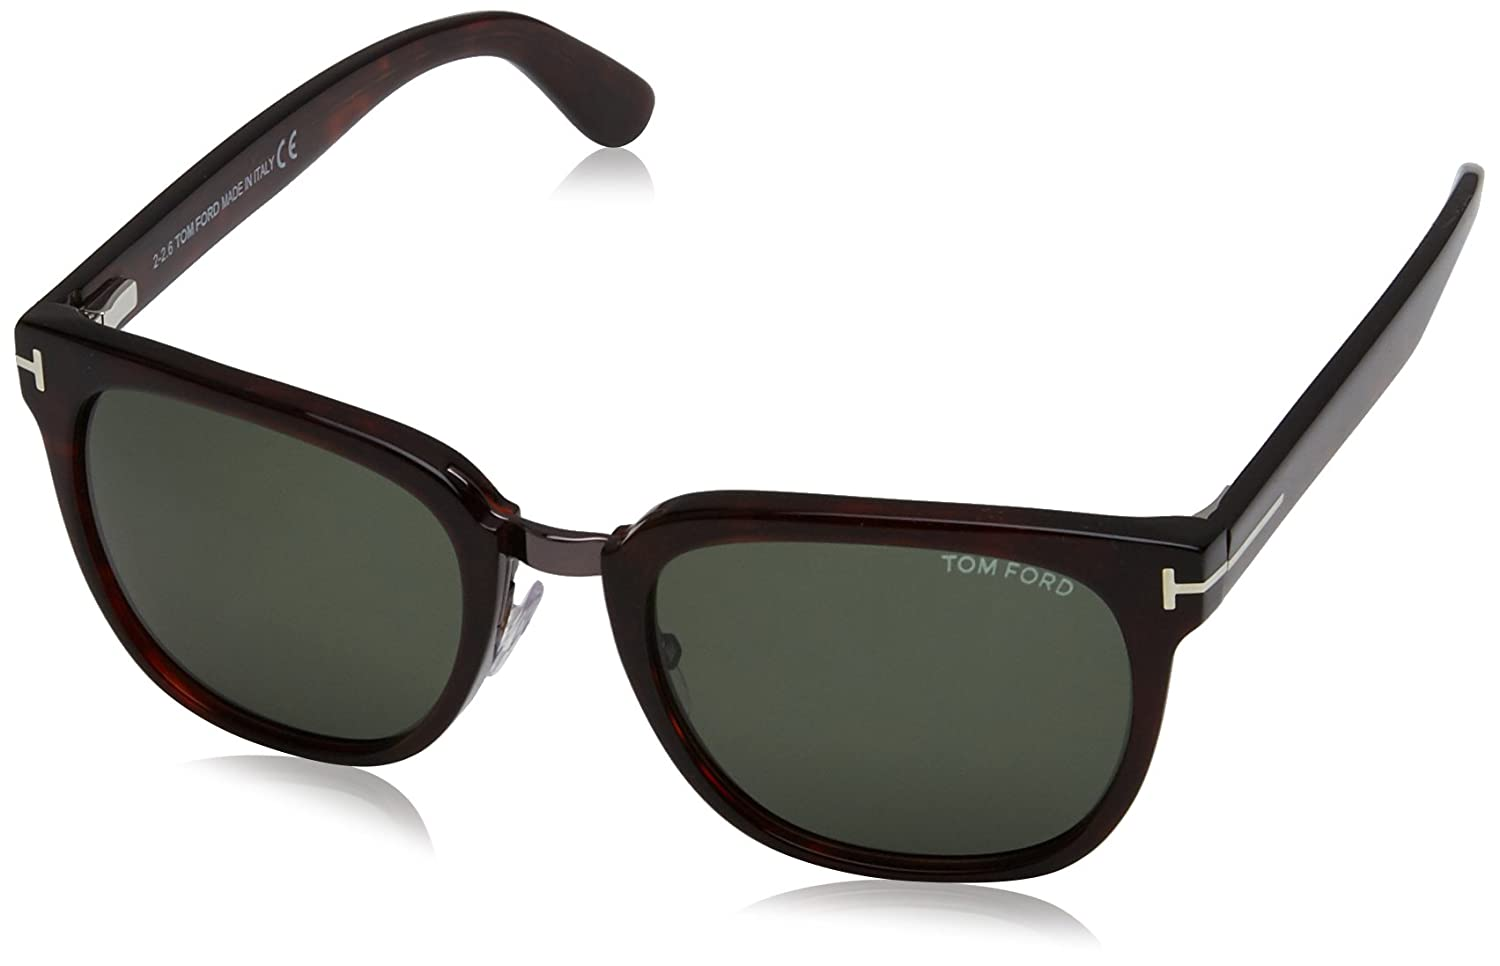 Tom Ford Sonnenbrille Rock (FT0290)